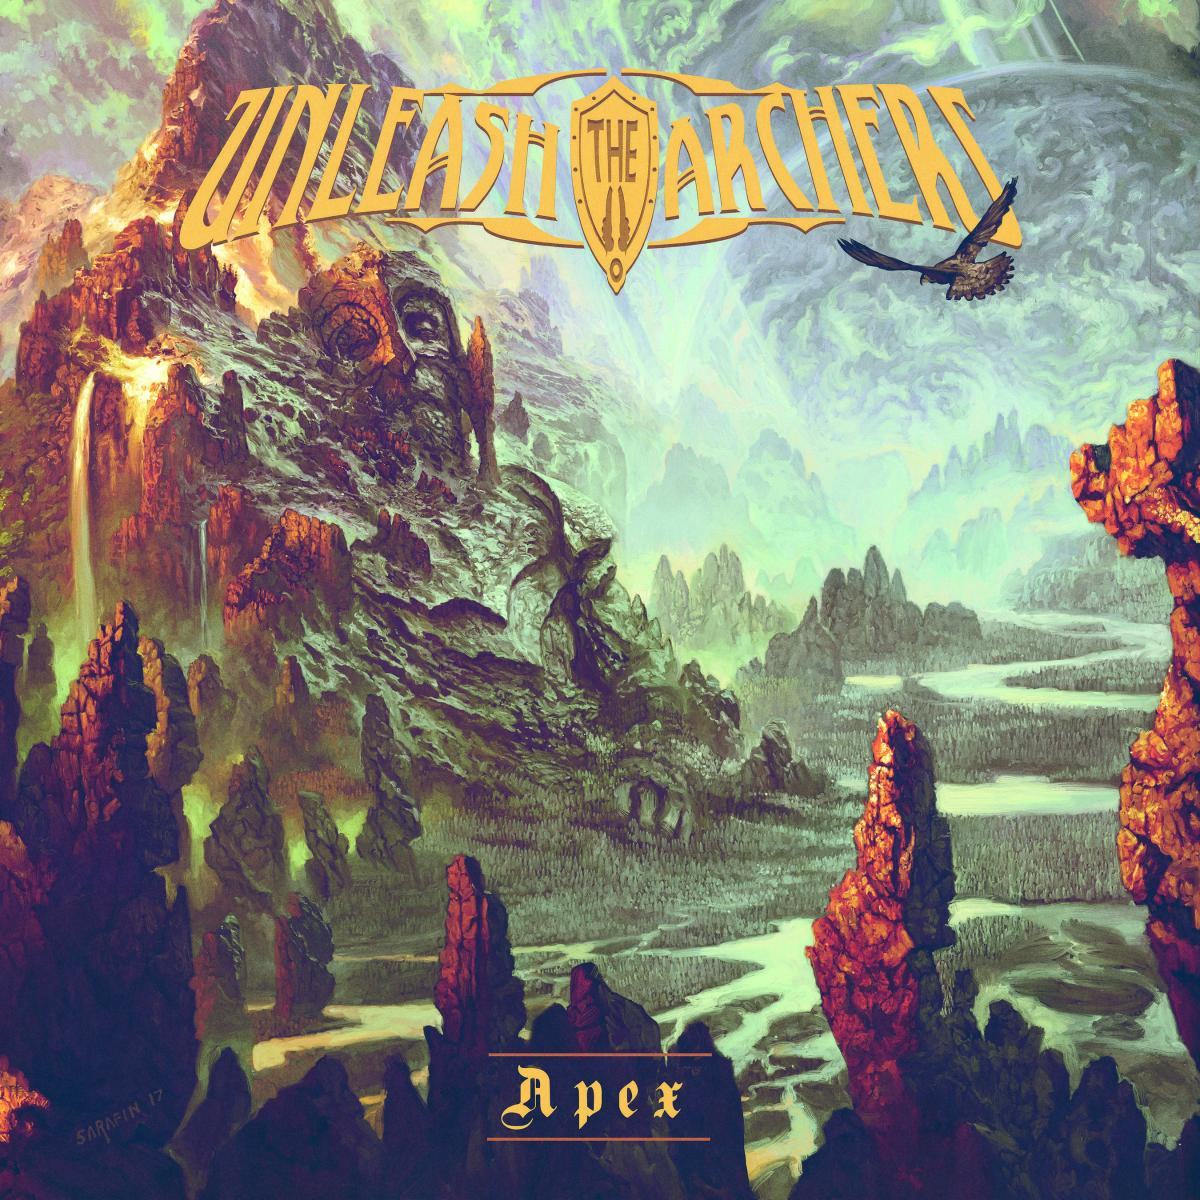 Unleash The Archers Release First Track & Music Video From UpcomingAlbum